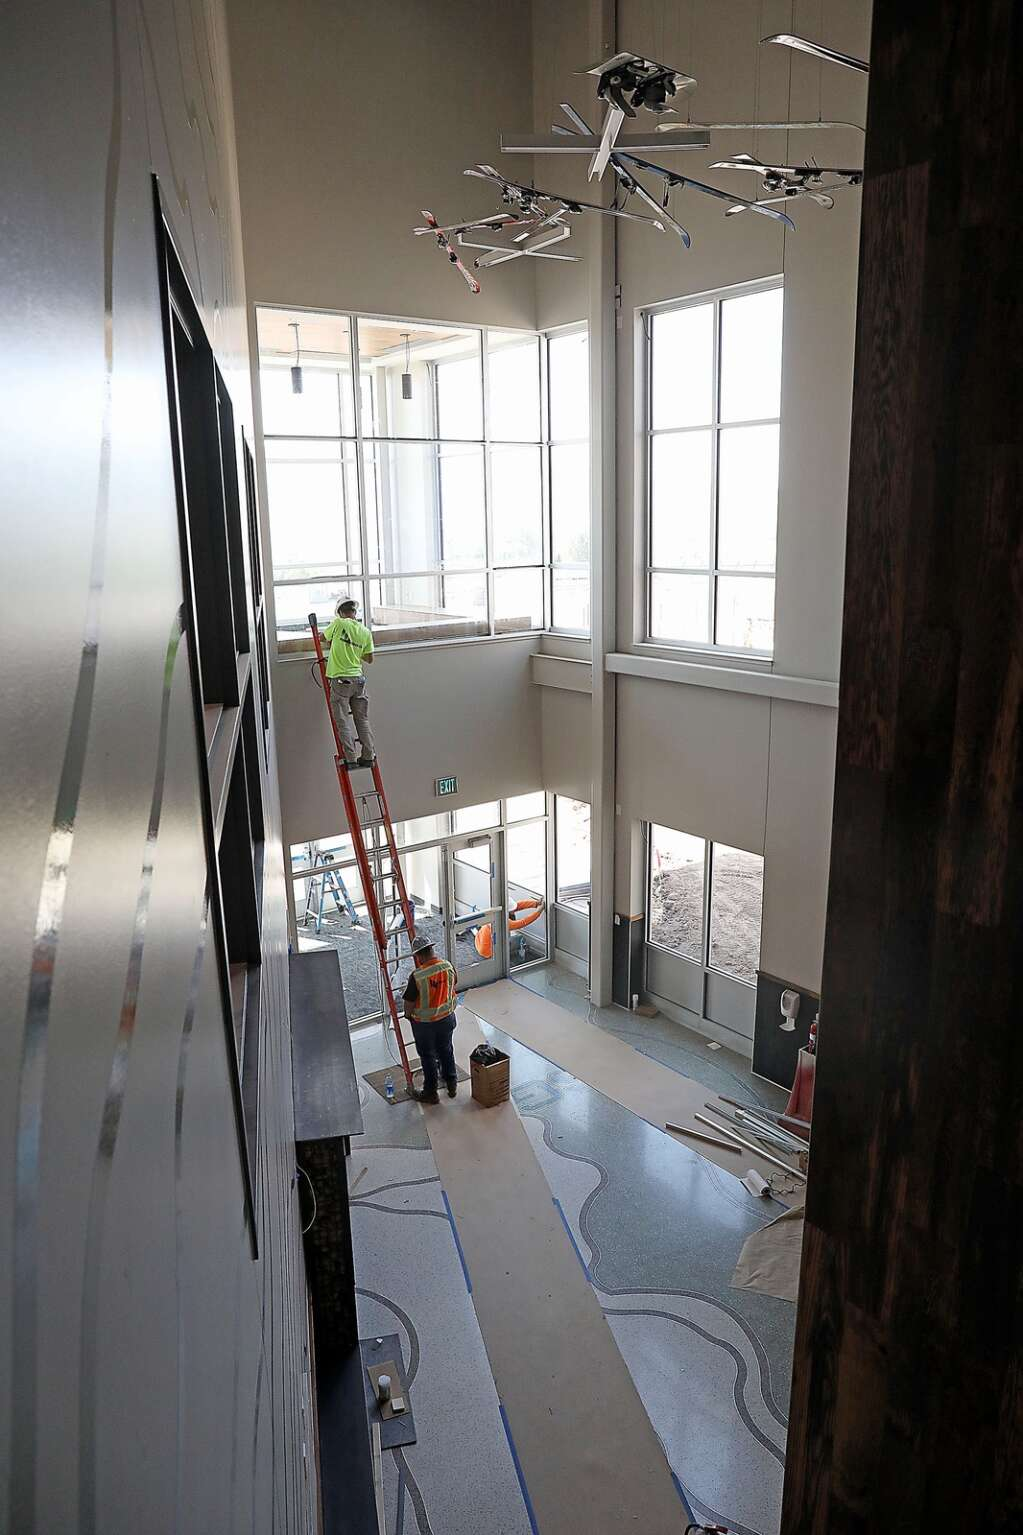 Workers install window seals in the entry of the new Sleeping Giant School. (Photo by John F. Russell)